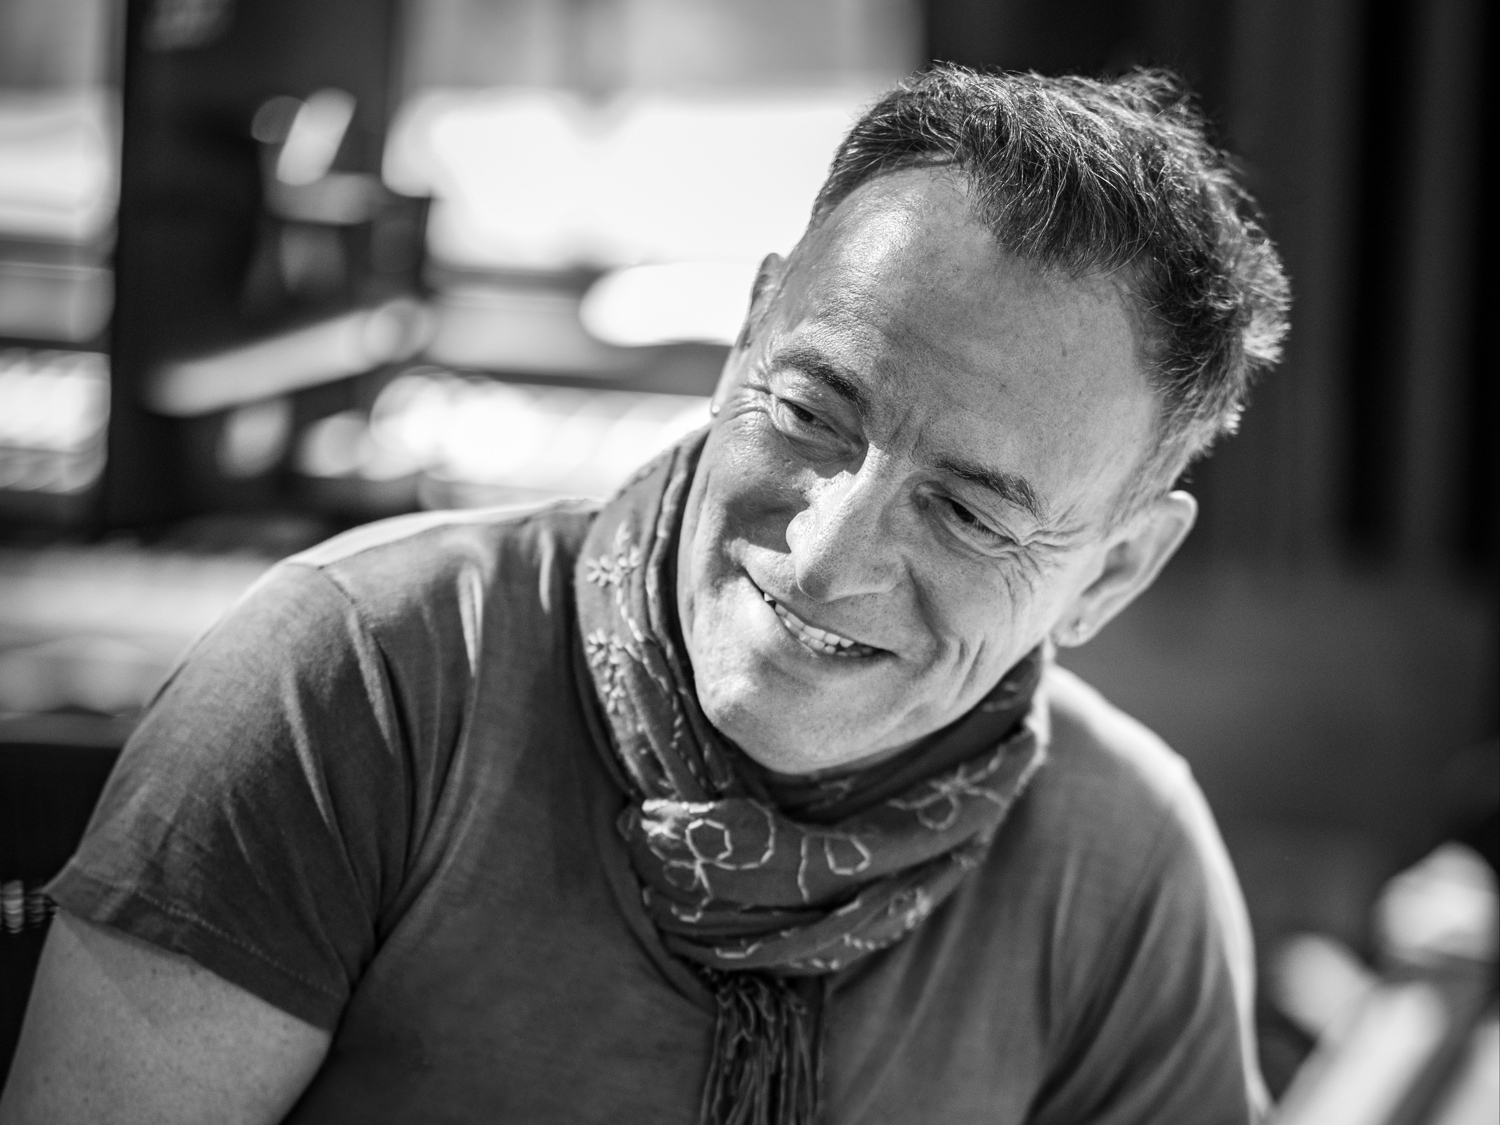 THE BOSS' LOVE LETTER: Thom Zimny on filming new Springsteen doc